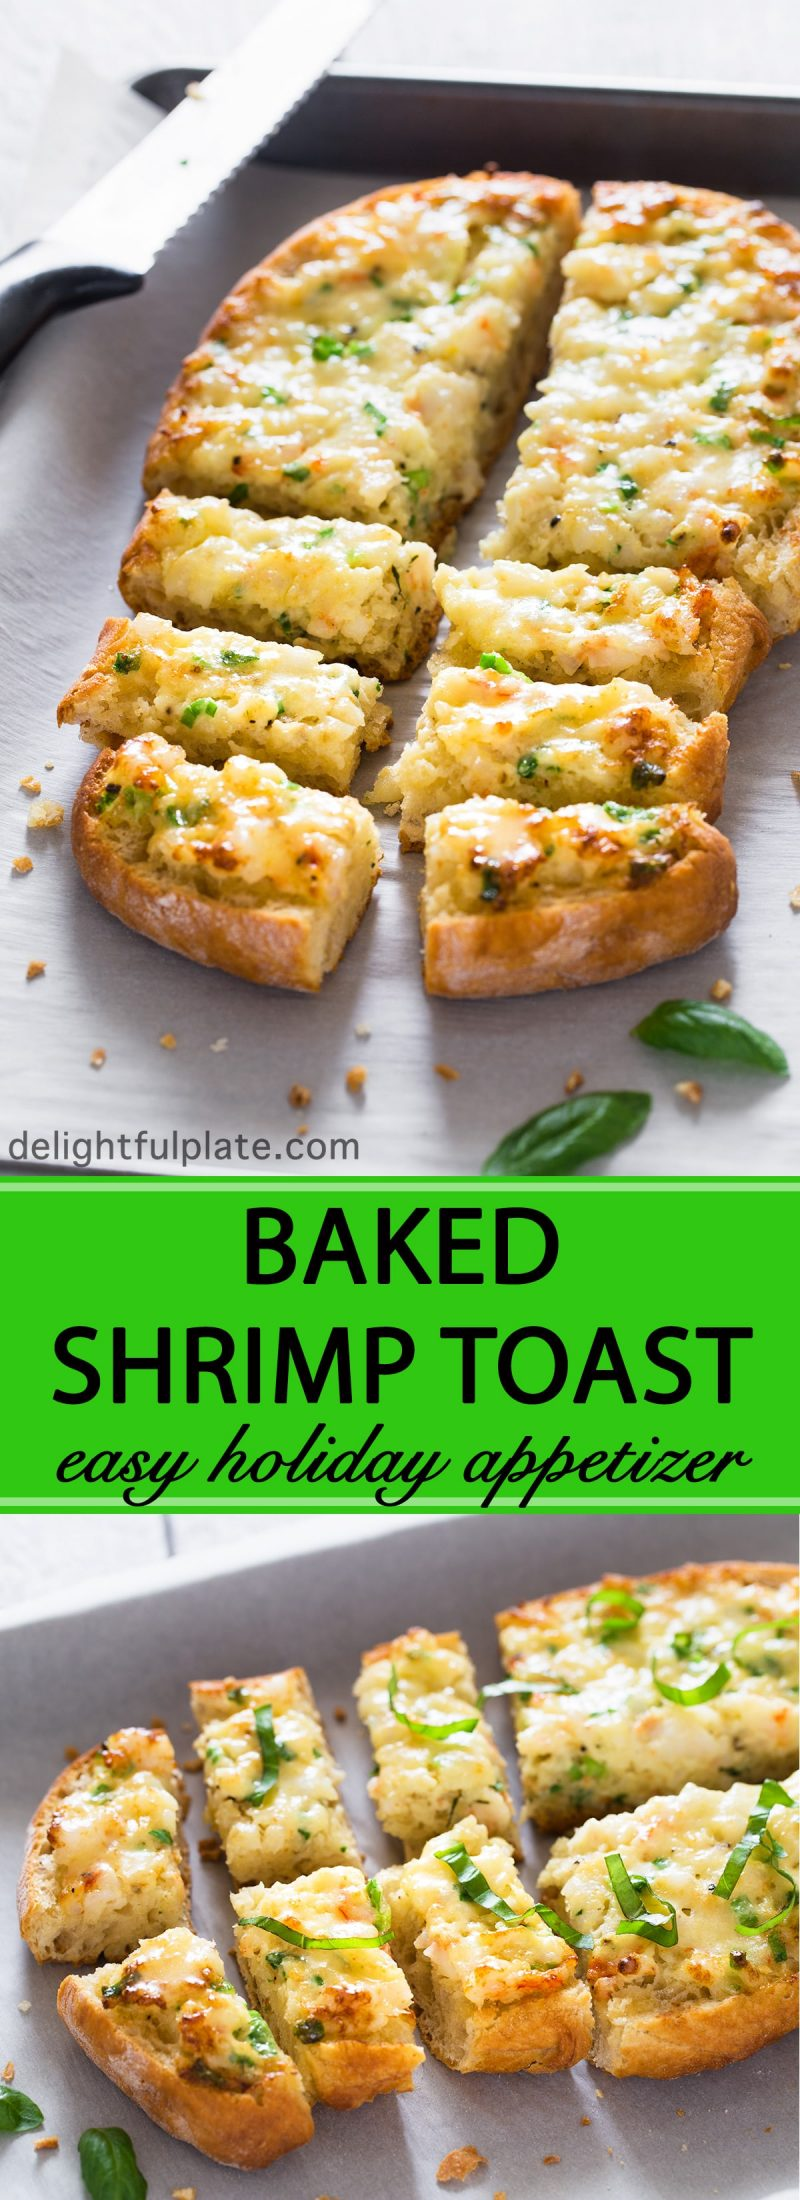 This baked shrimp toast features rich and creamy shrimp mixture on top of crispy bread. If you are looking for a quick and easy appetizer for your next party, give this a try.